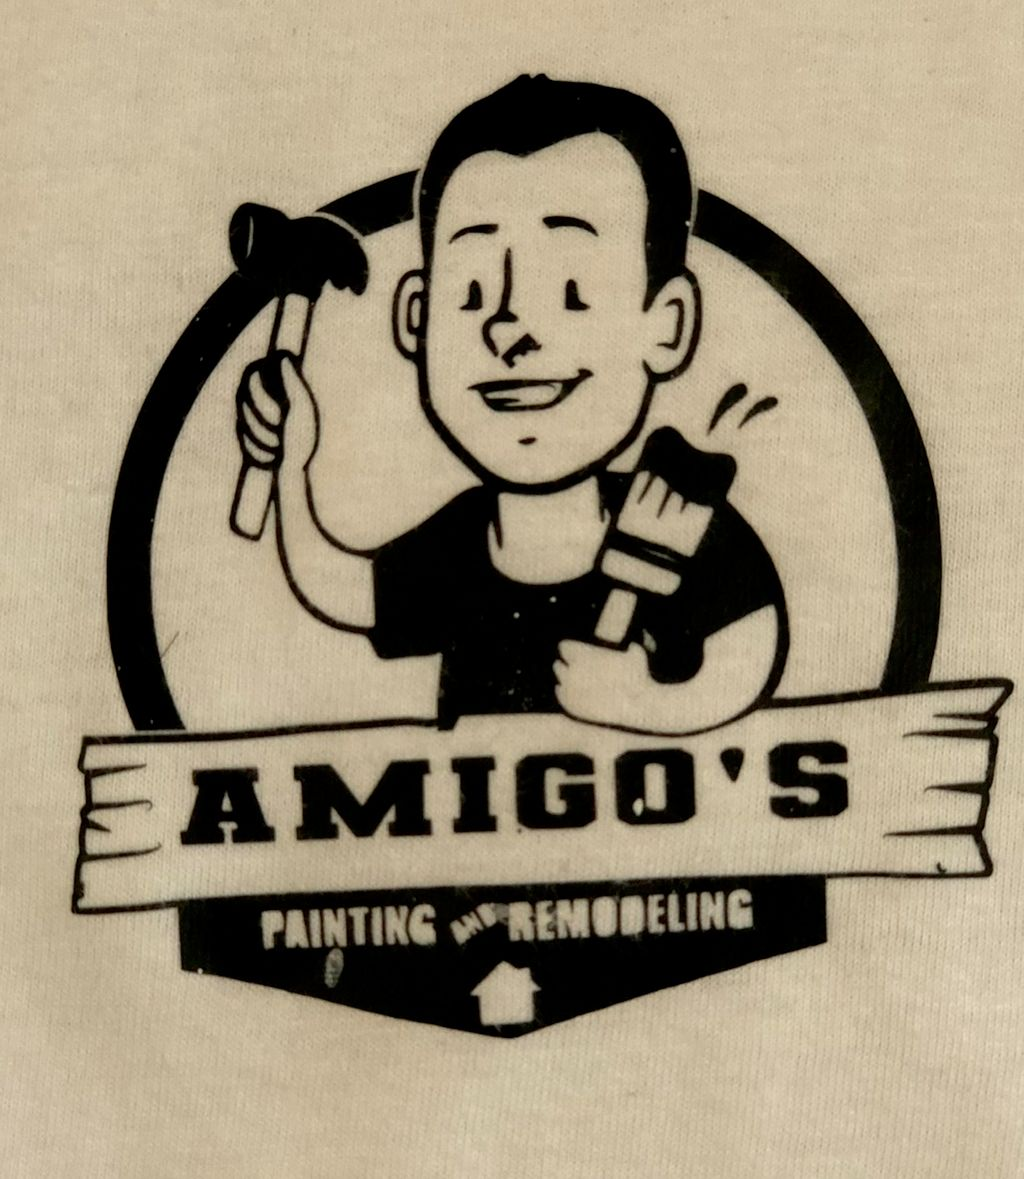 Amigo's painting and remodeling